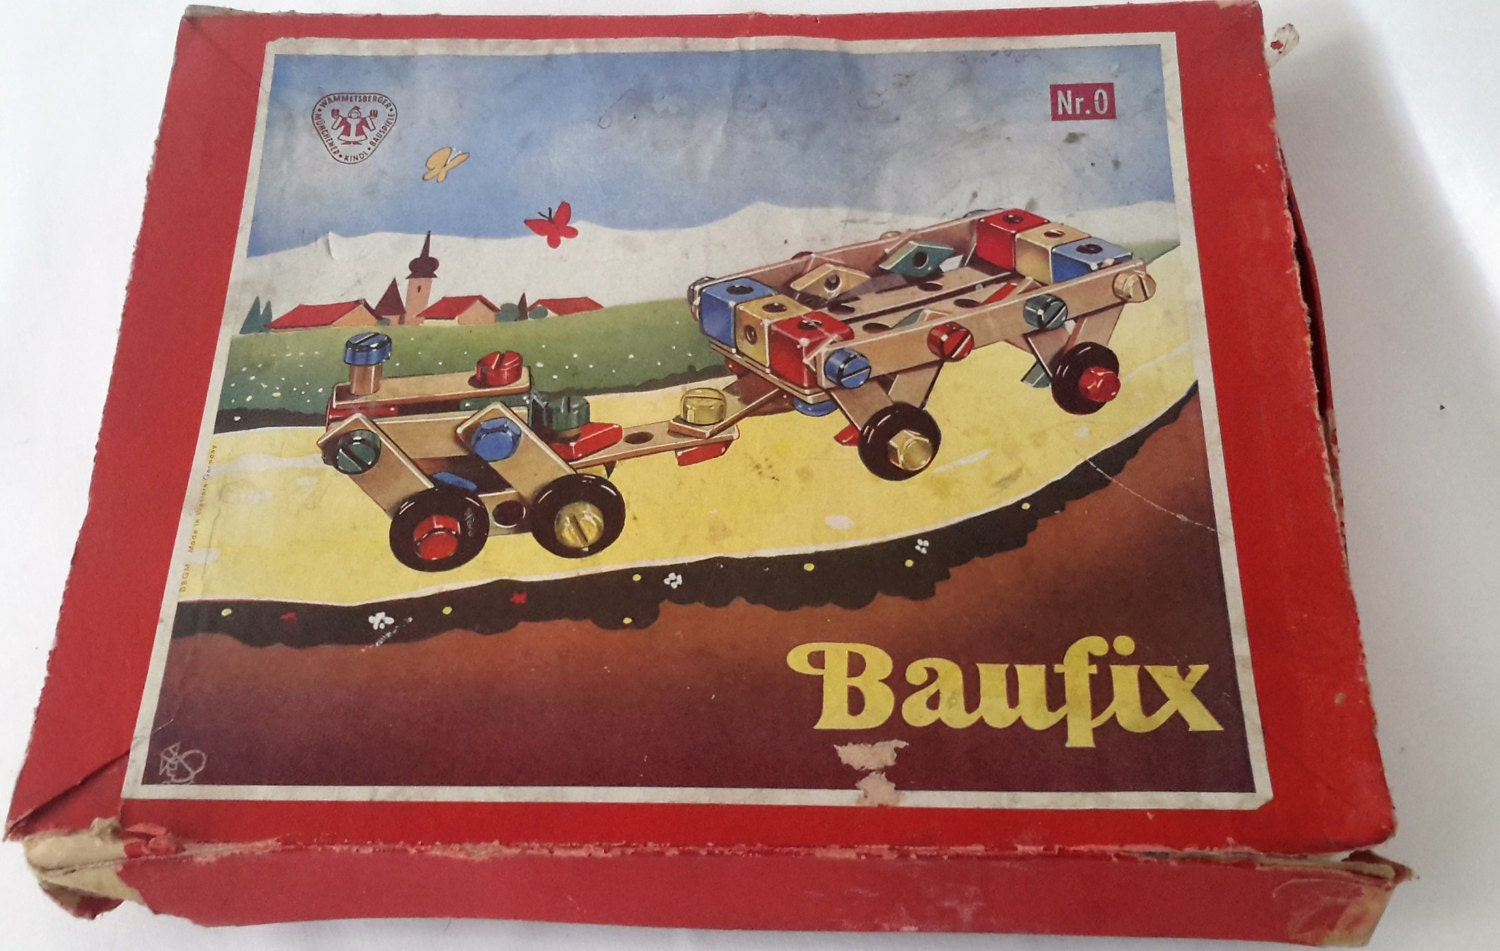 Vintage wooden toy construction set Baufix 1950s toy childrens educational toy for 3yrs  building kit for Christmas.